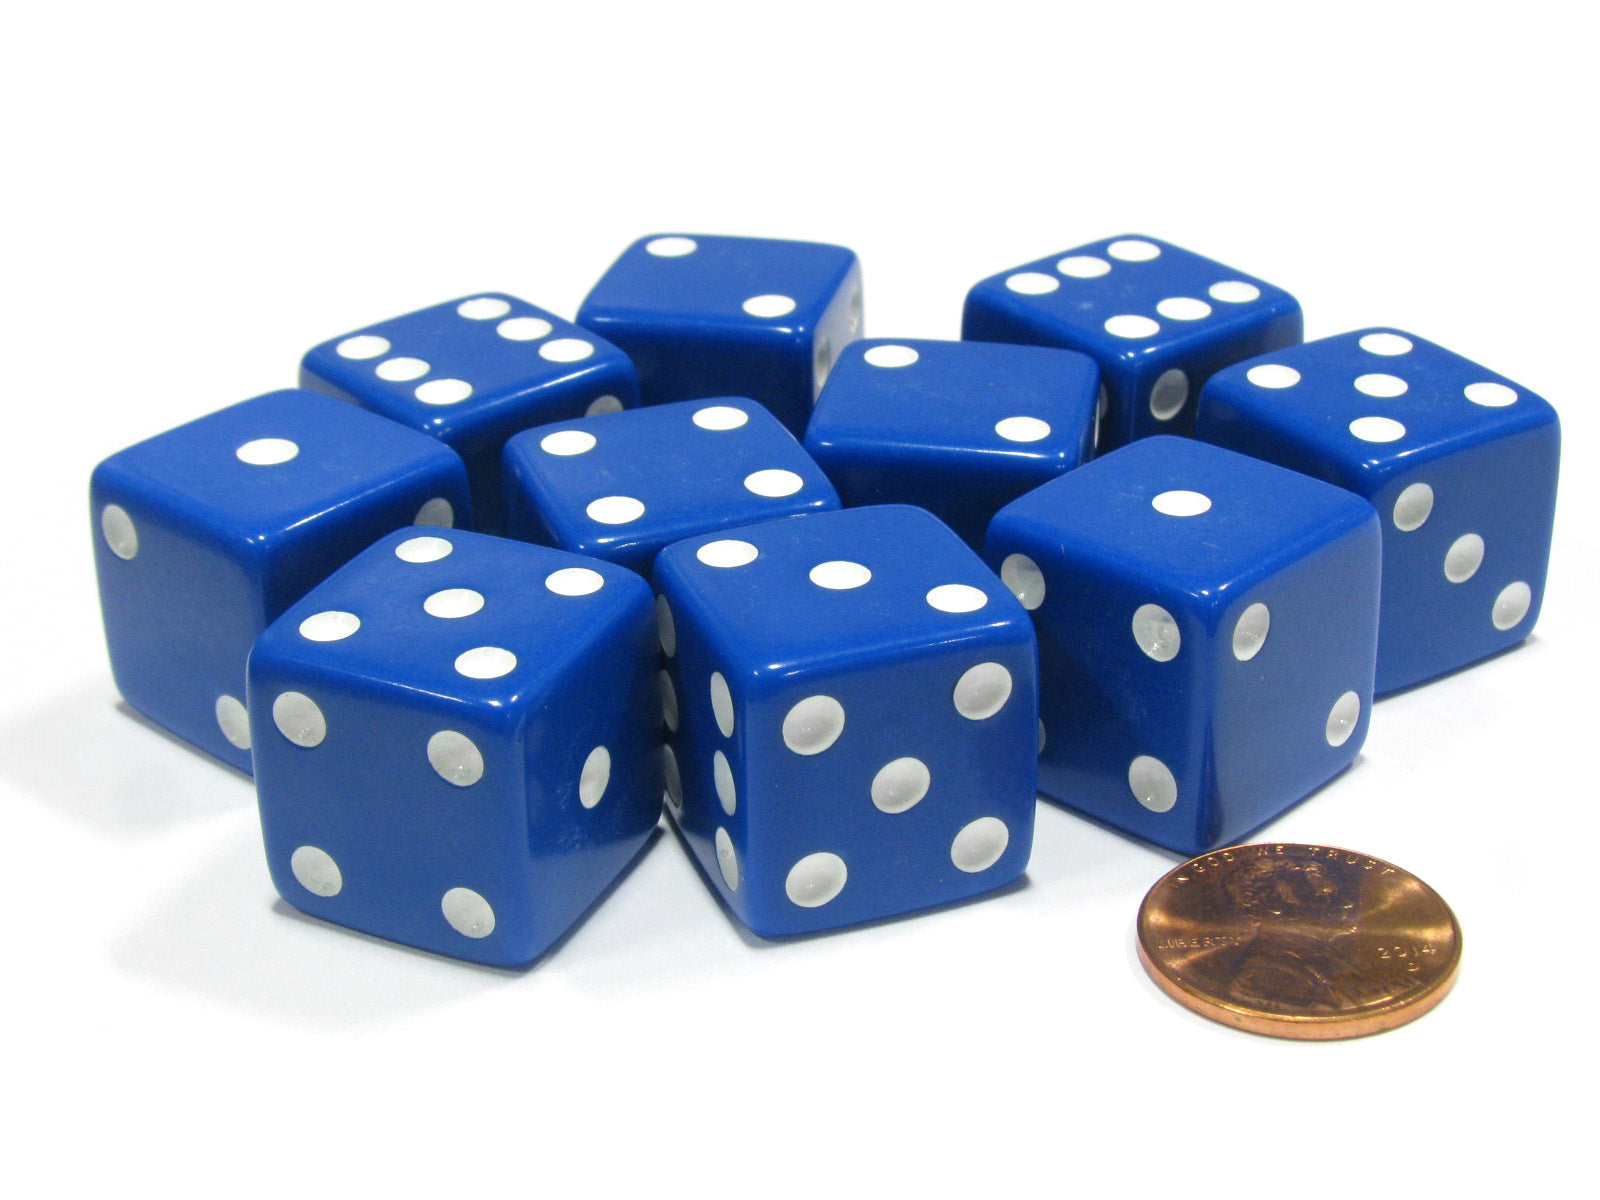 Set of 10 Large Six Sided Square Opaque 19mm D6 Dice - Blue with White Pip Die